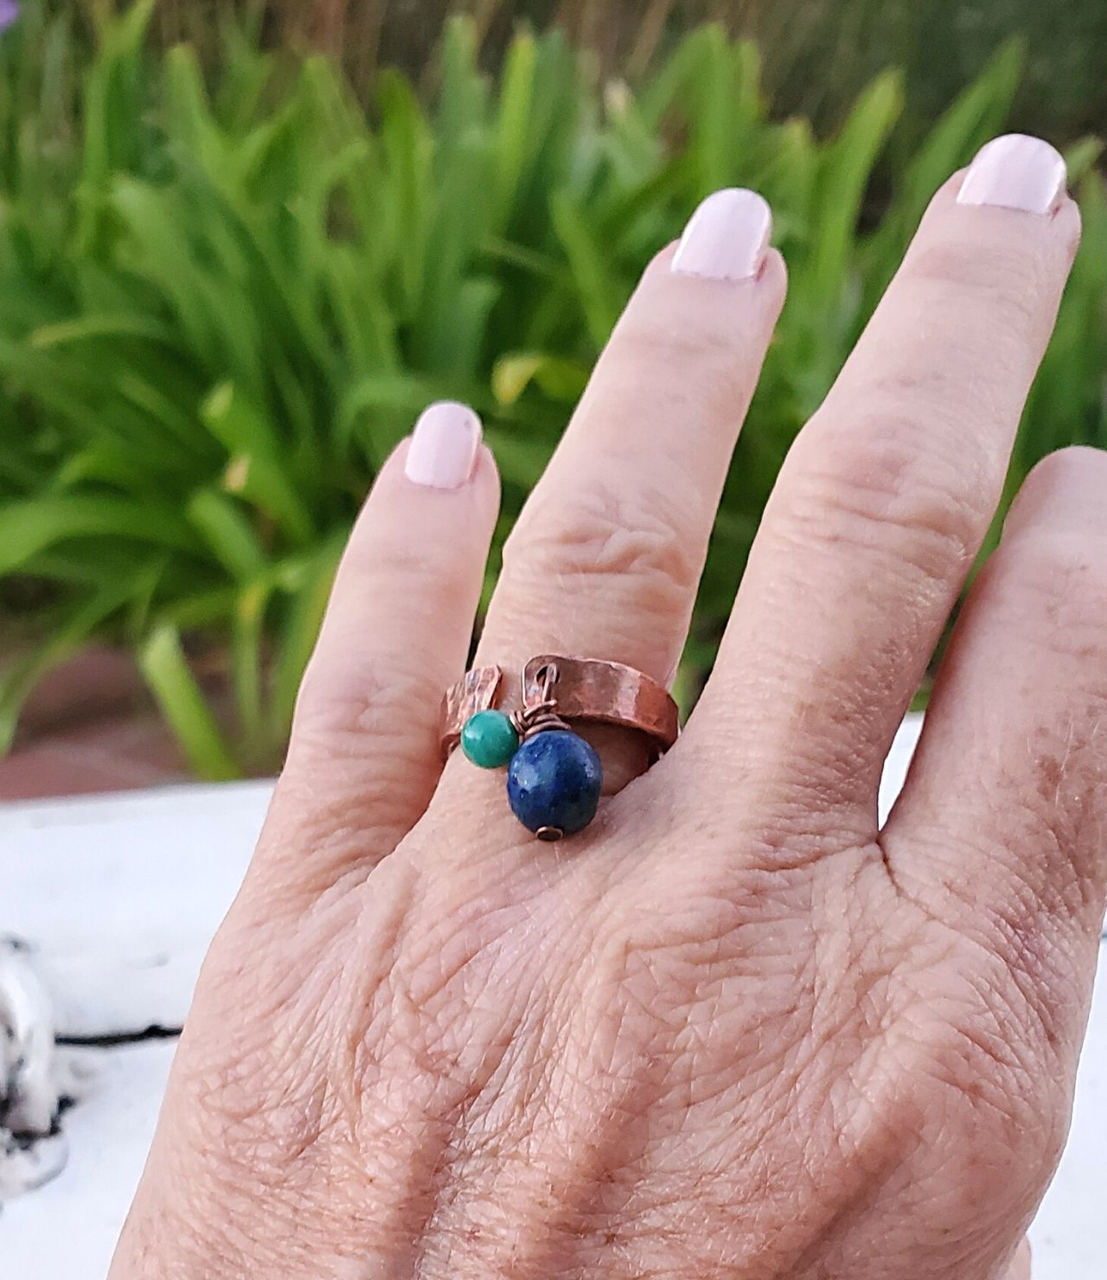 Wearing an artisan copper cuff ring with blue gemstone on white distressed background